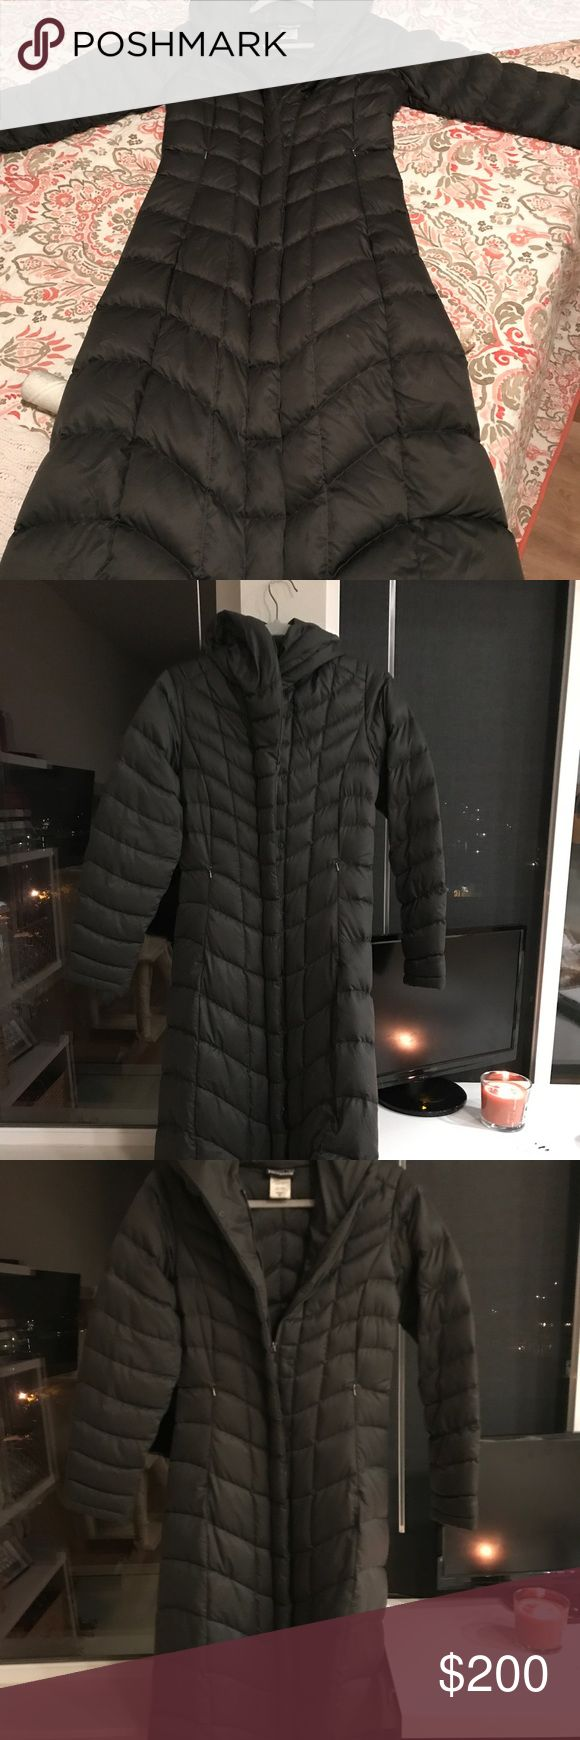 Patagonia Parka size XS Beautiful Patagonia parka size extra small. I used it for one season. It good condition Patagonia Jackets & Coats Puffers